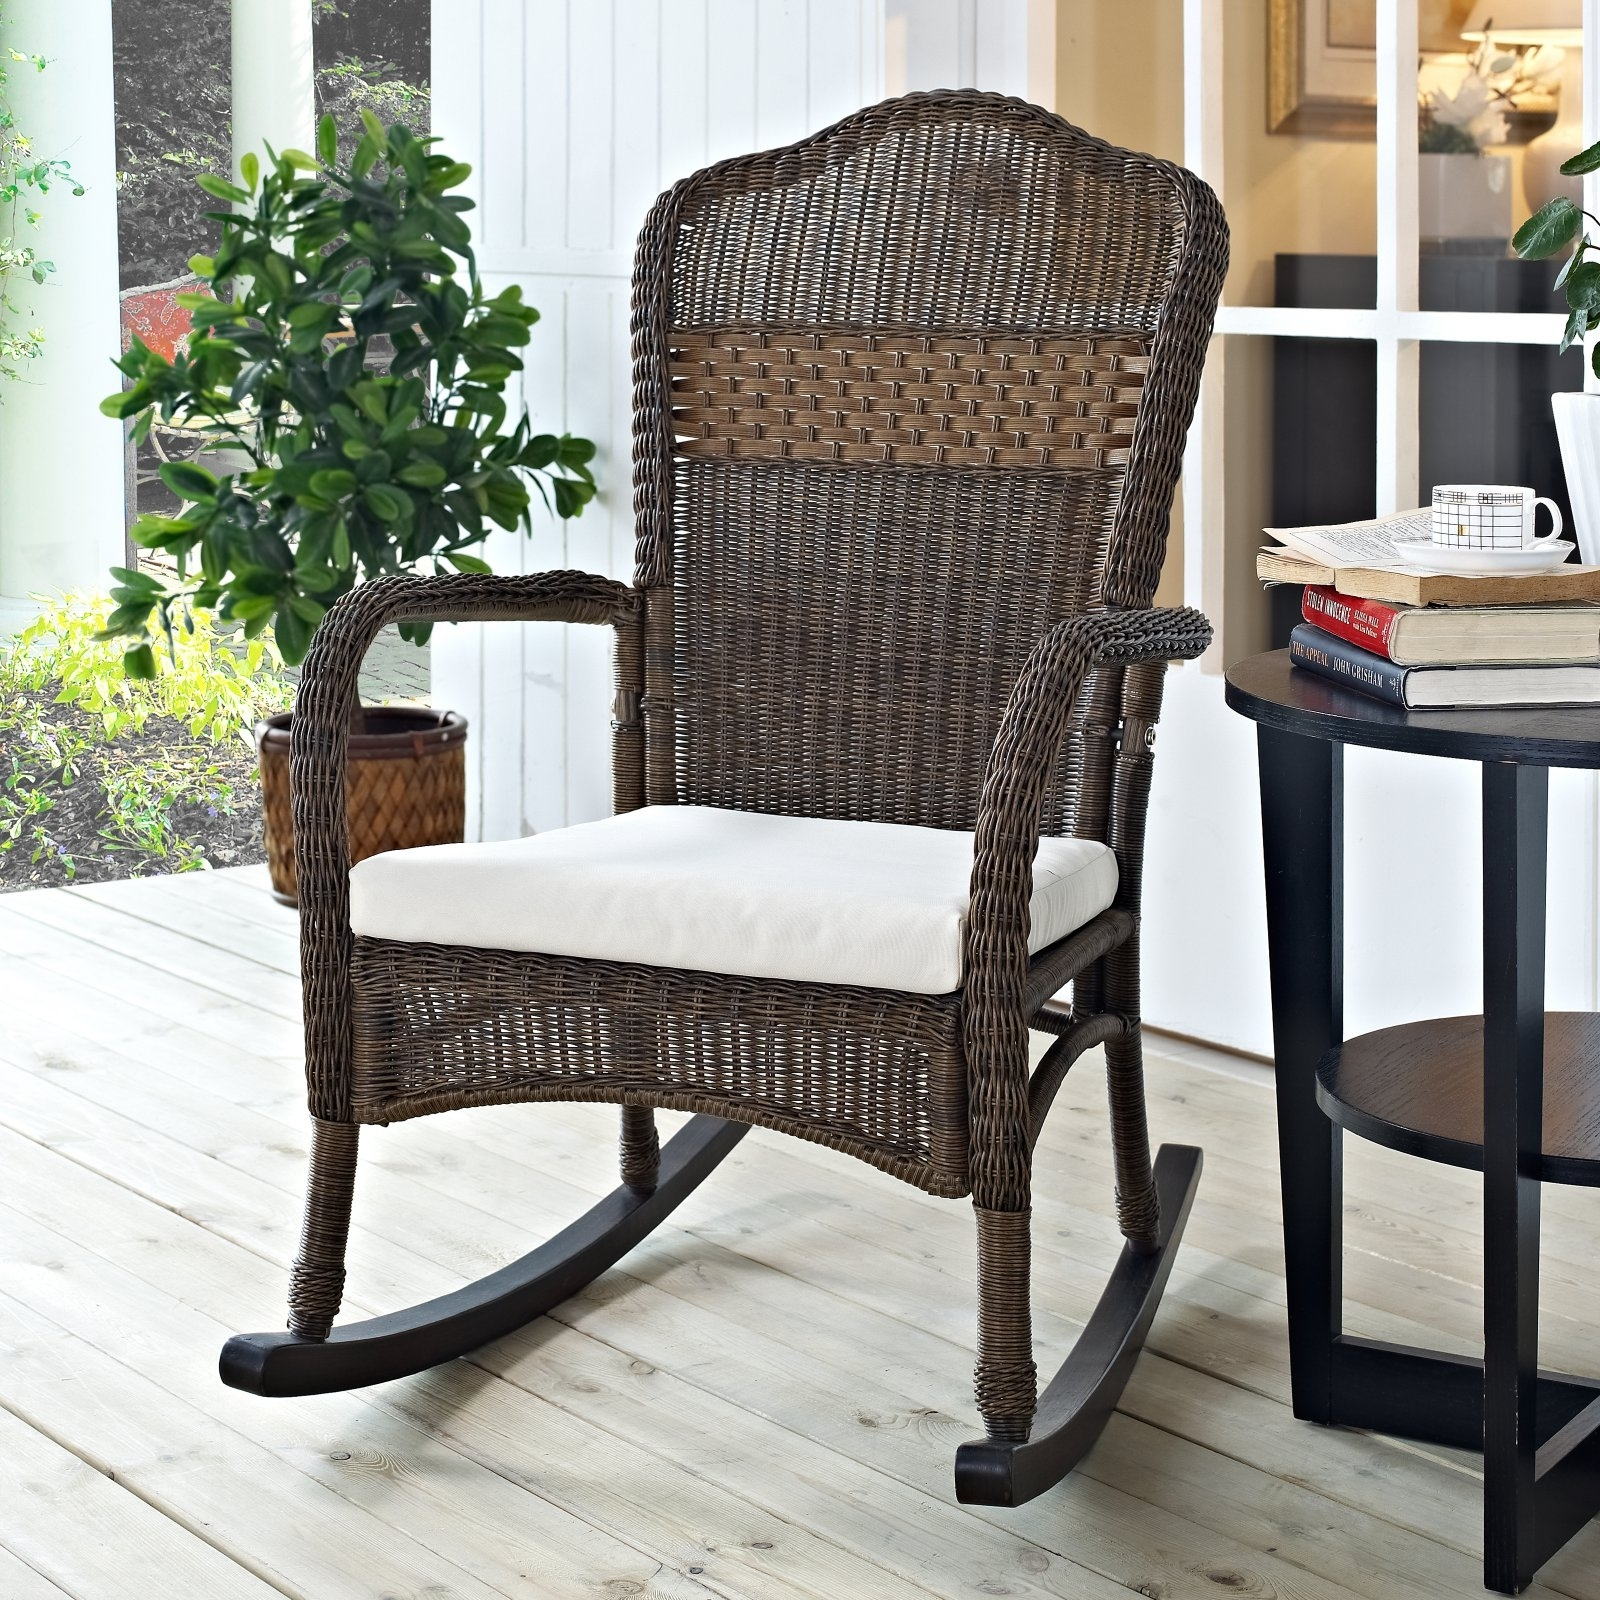 Coral Coast Mocha Resin Wicker Rocking Chair With Beige Cushion For Resin Patio Rocking Chairs (#3 of 15)